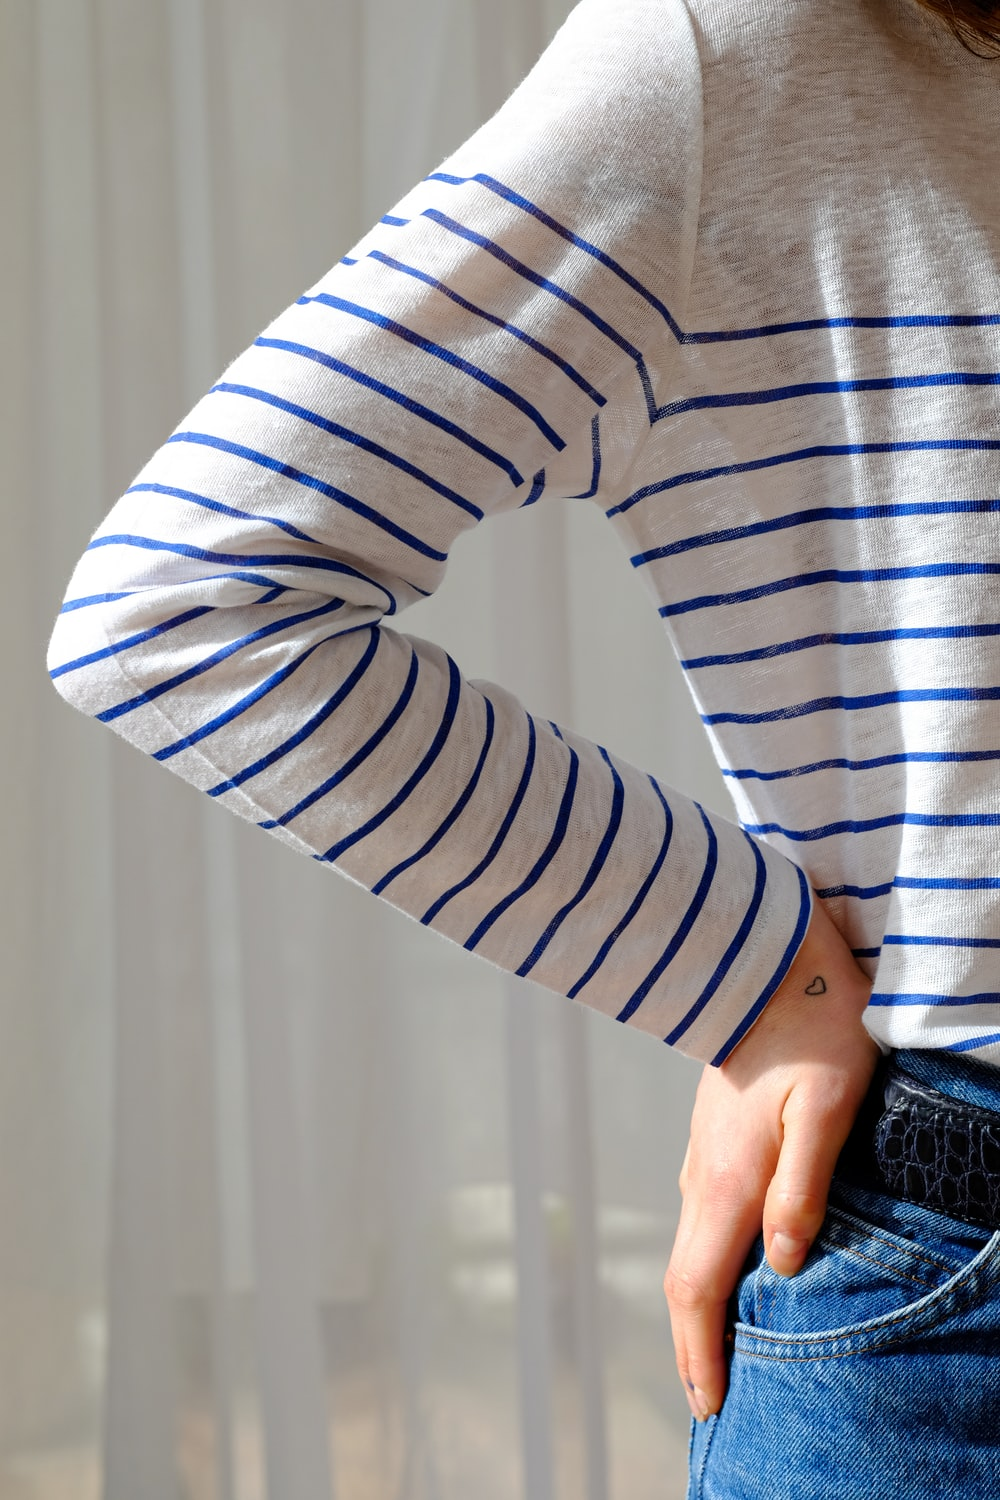 person in white and gray striped long sleeve shirt